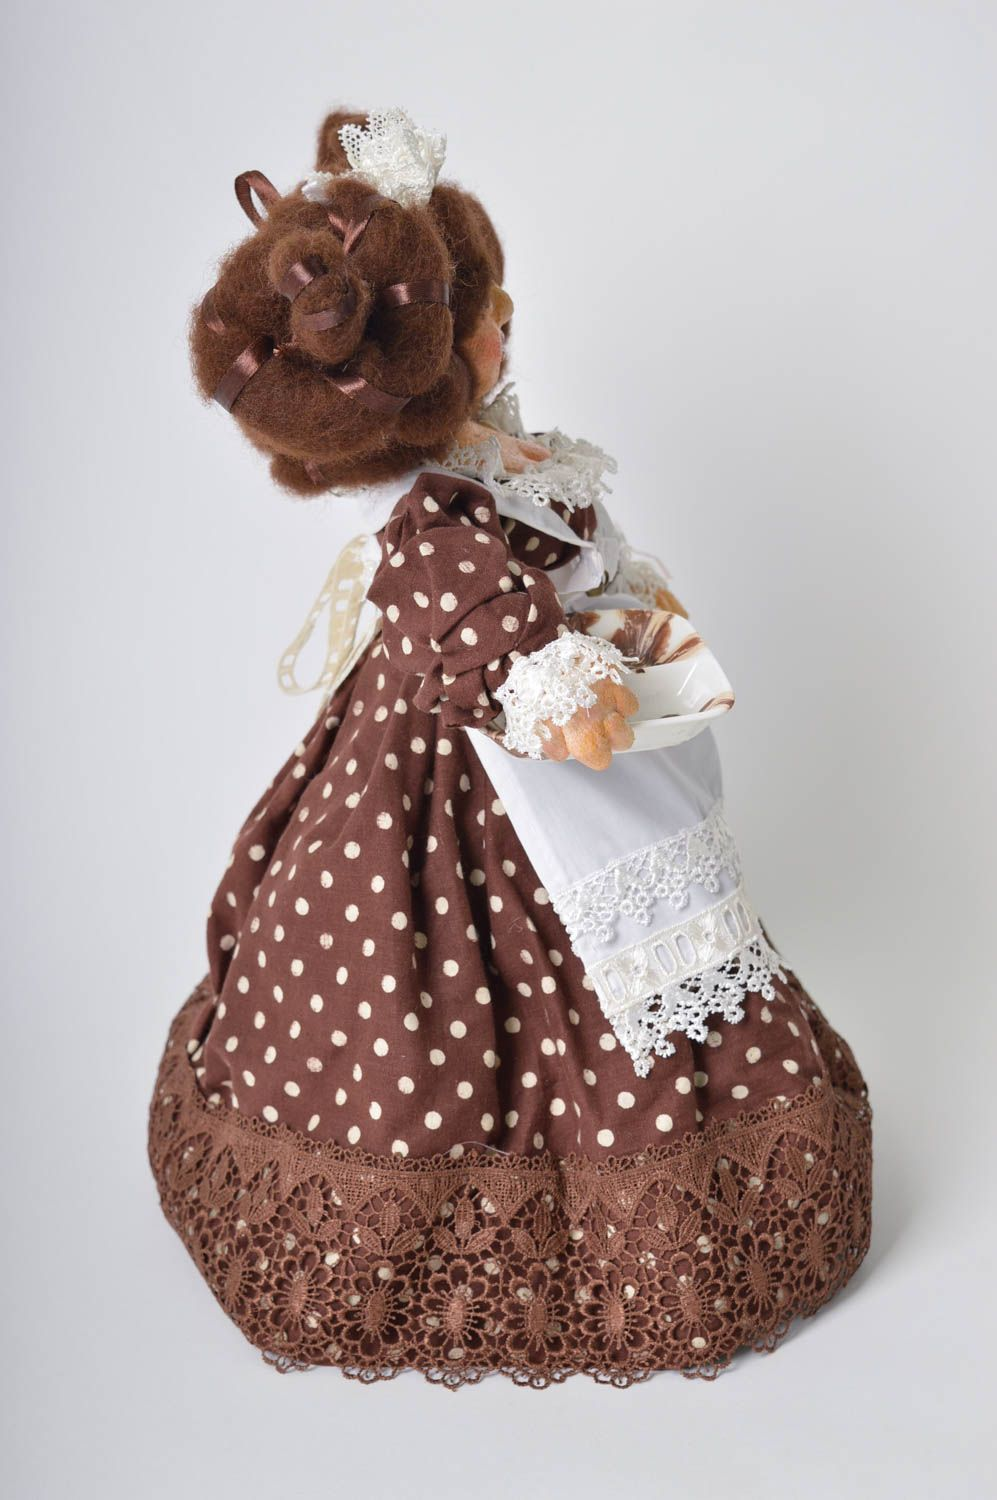 Handmade soft doll soft toy for kids nursery decor for decorative use only photo 2